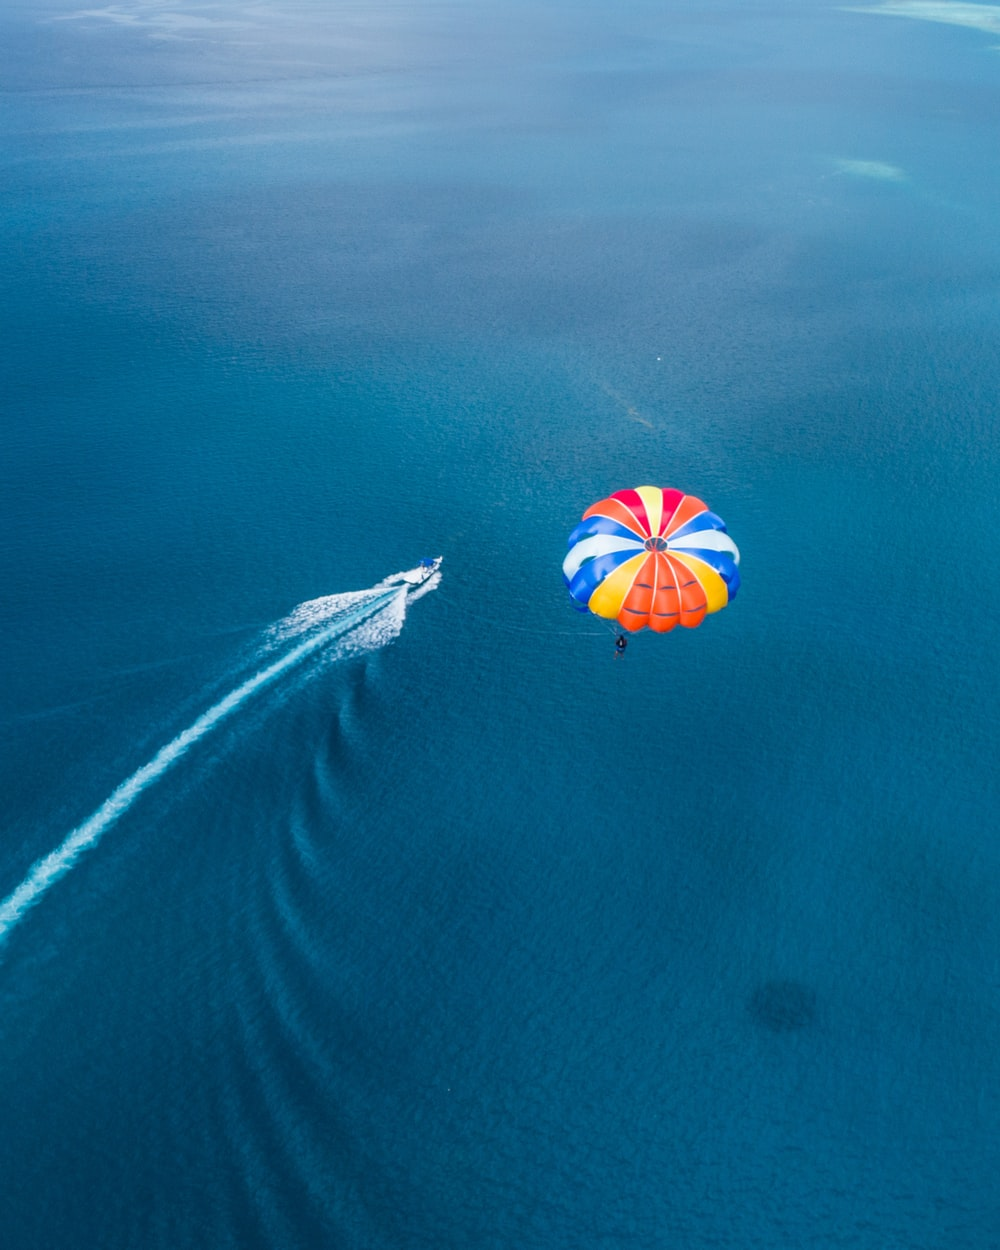 aerial photo of parachute above sea